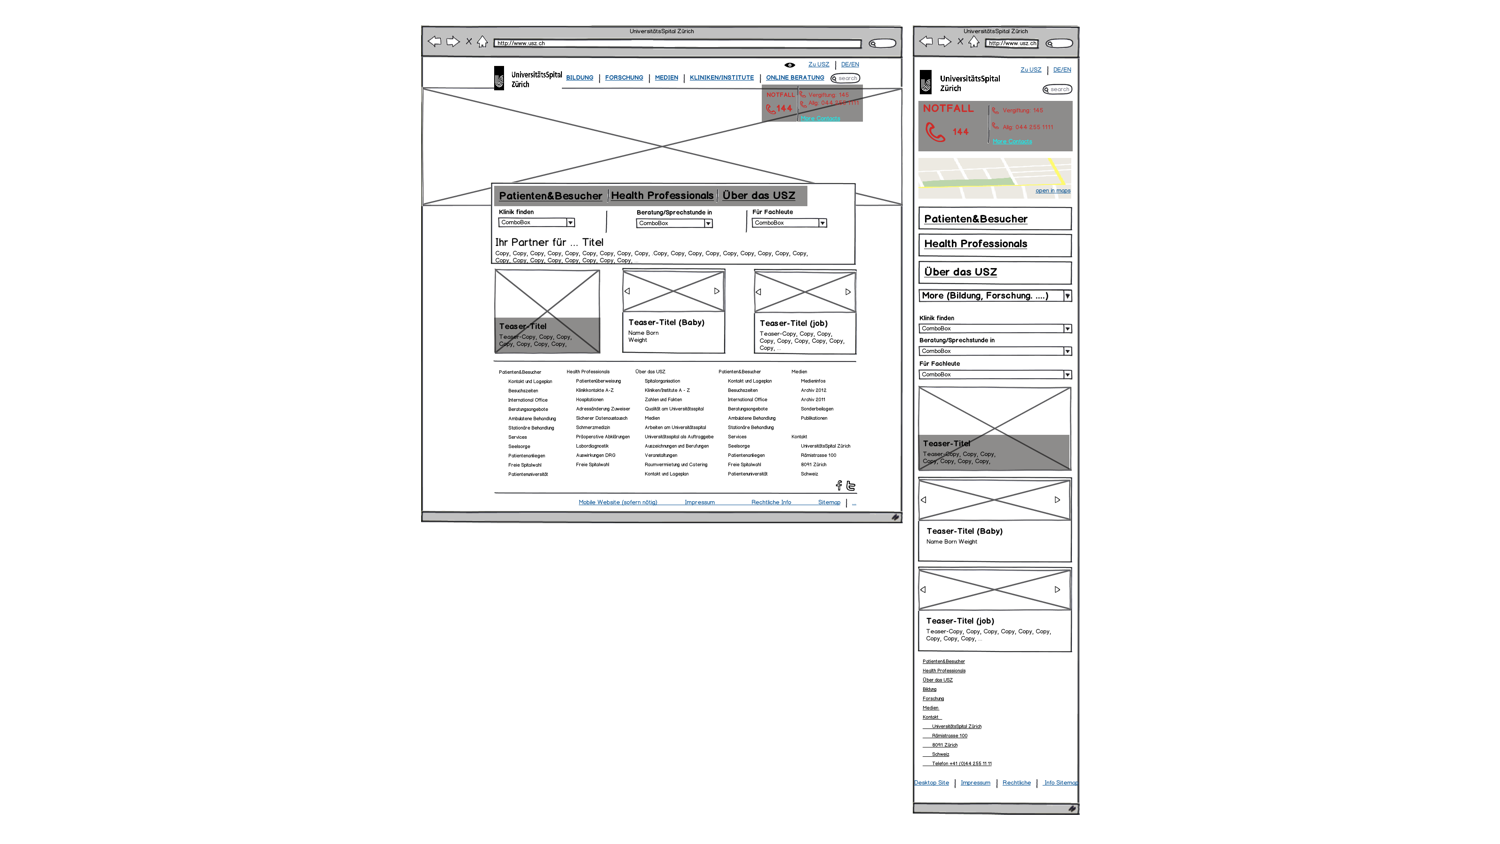 low-fi wireframes (balsamique) – desktop/mobile – these low-fi wireframes were meant to provided the UI designers with the necessary structure to explore visual executions of the homepage for the pitch – the visual requirements for the pitch did not go much beyond